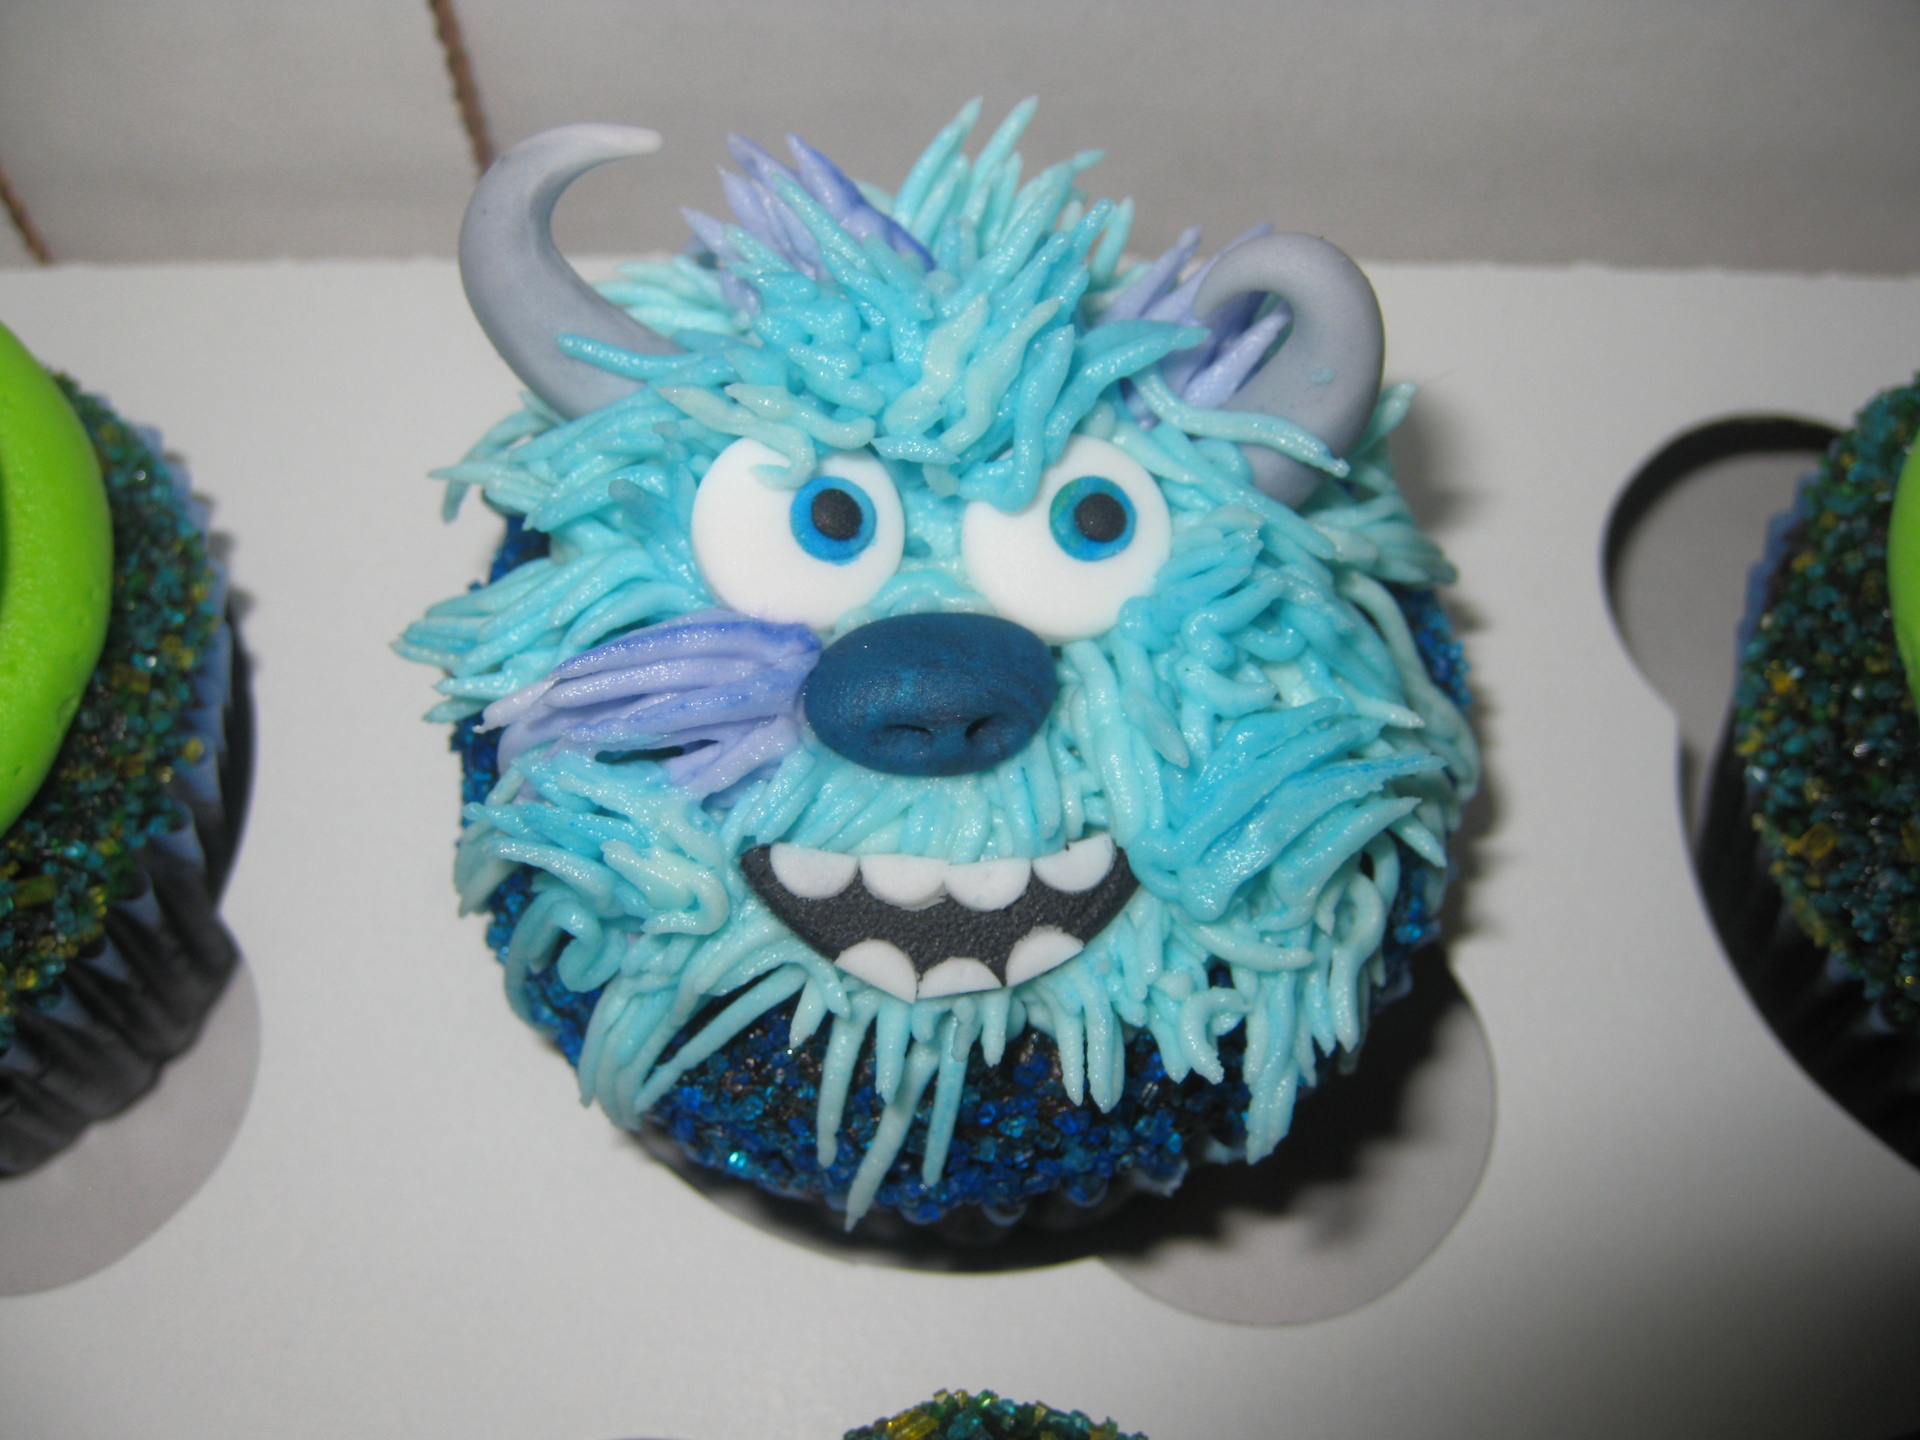 Monsters Inc Cupcakes For Your Halloween Theme Cupcakes